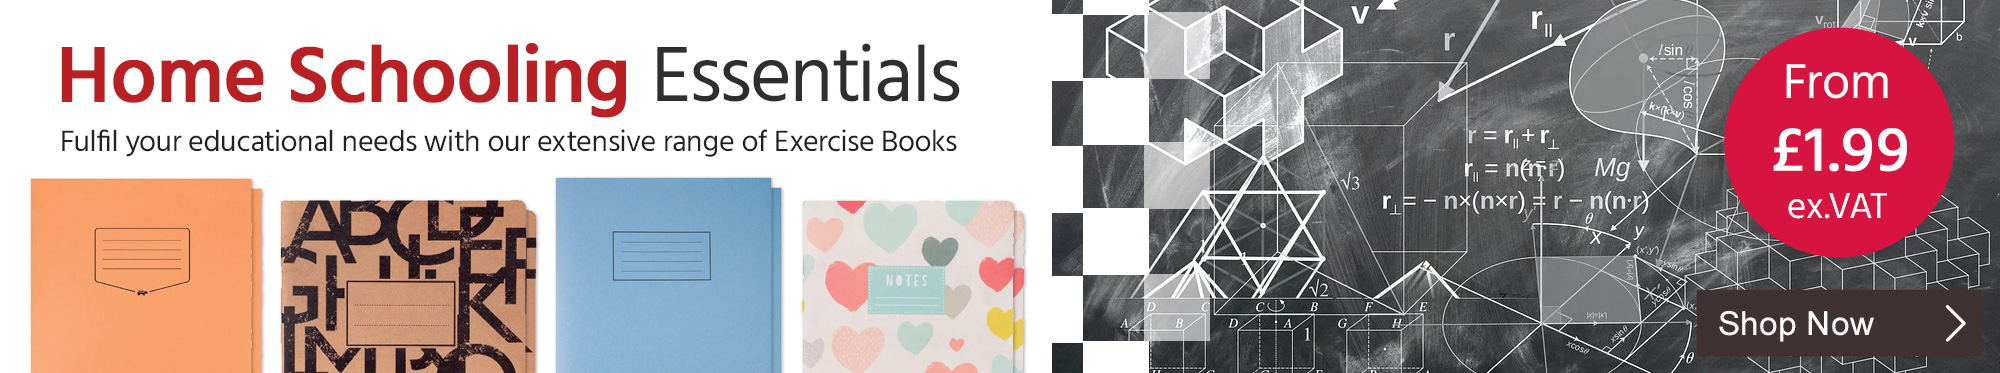 Fulfil Your Educational Needs with Our Extensive Range of Exercise Books